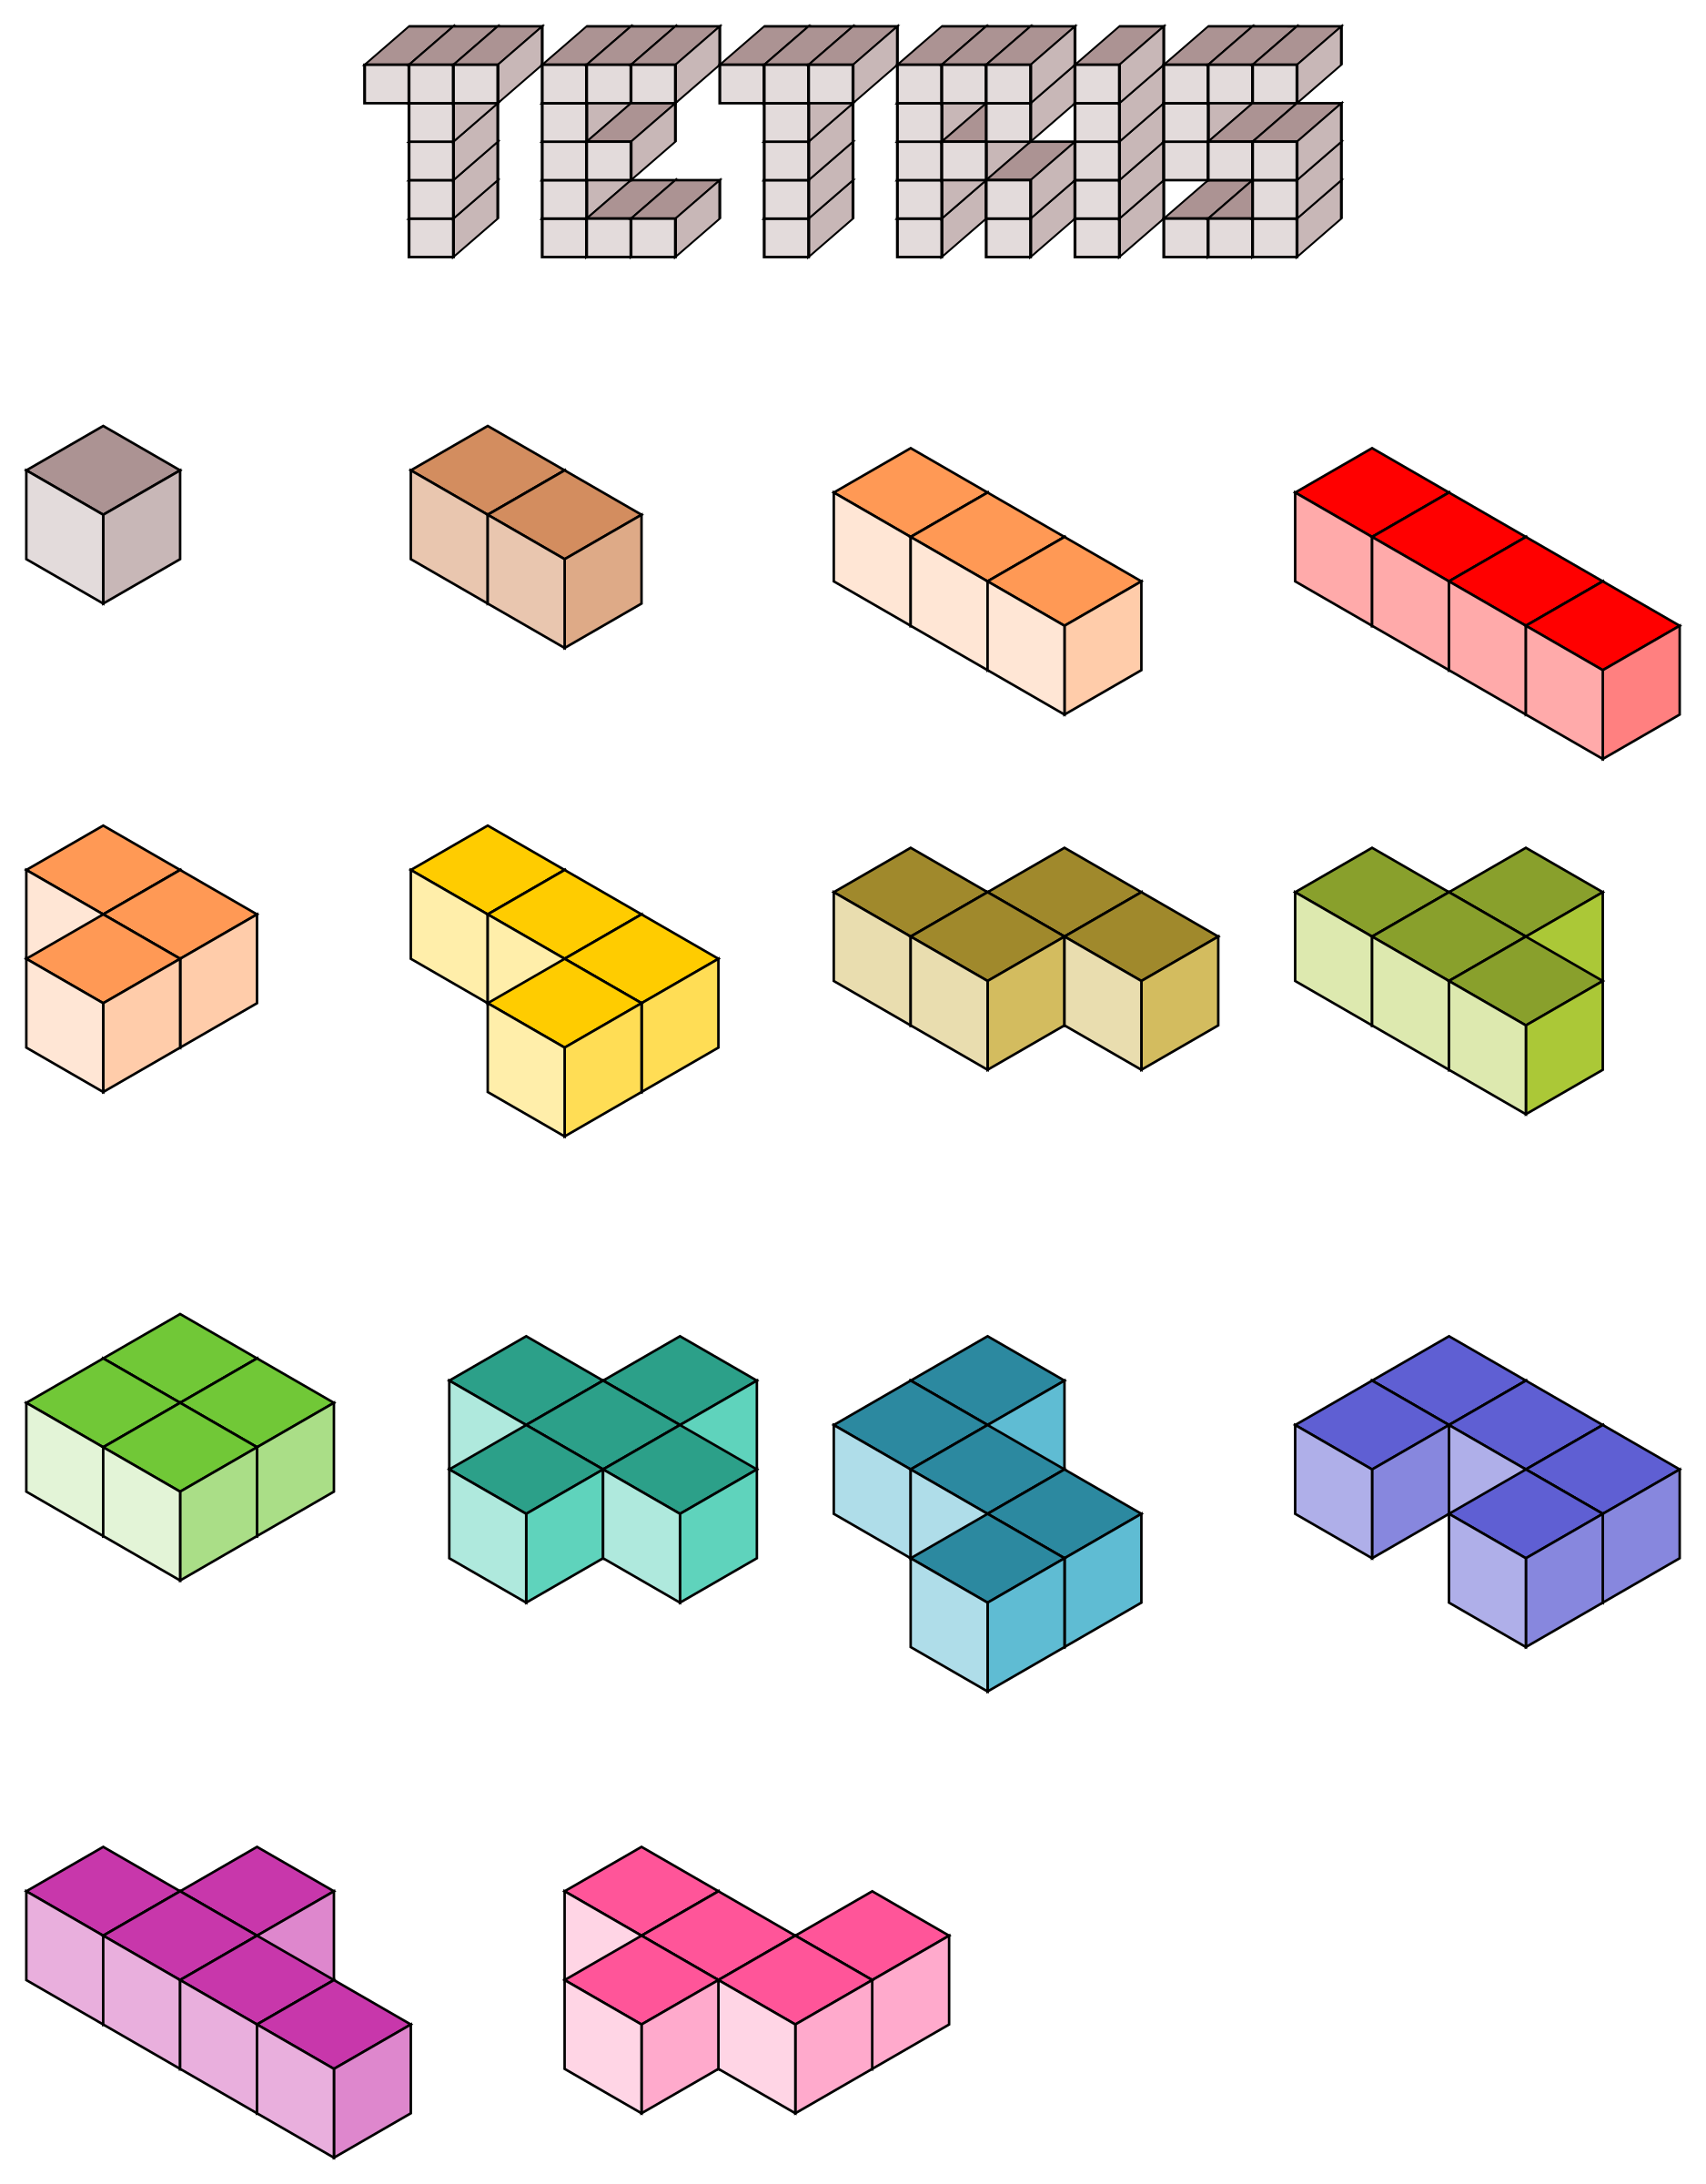 3D Tetris blocks by filtre